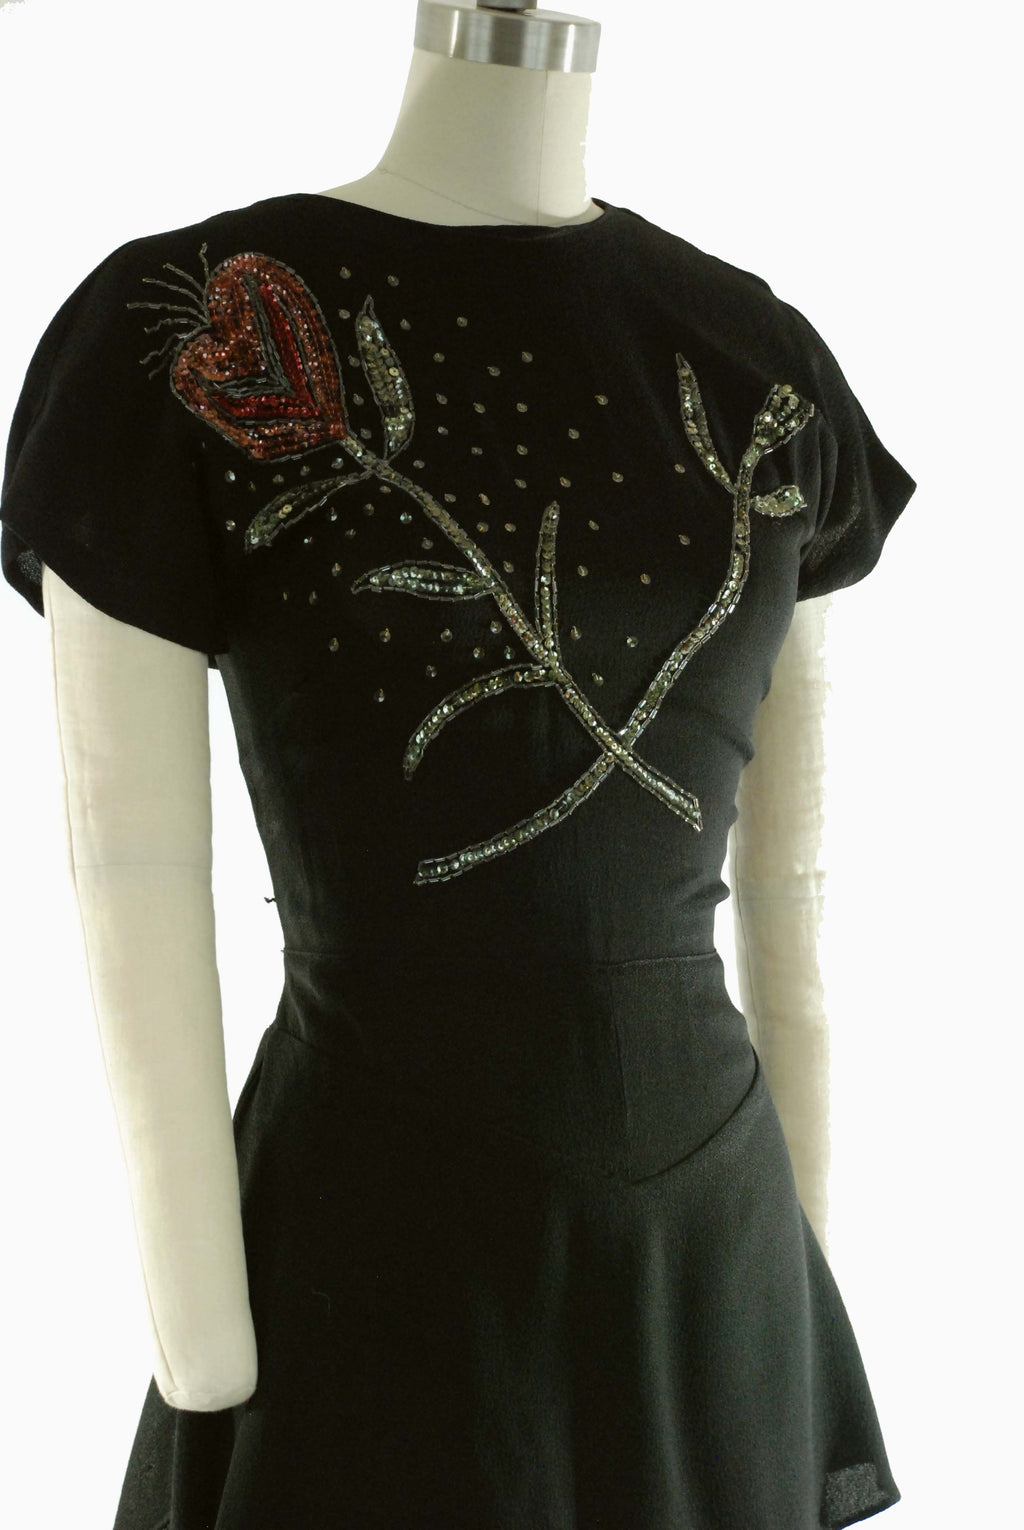 1940s Evening Gown in Sequined Black Rayon Crepe with Heart-Flower Motif